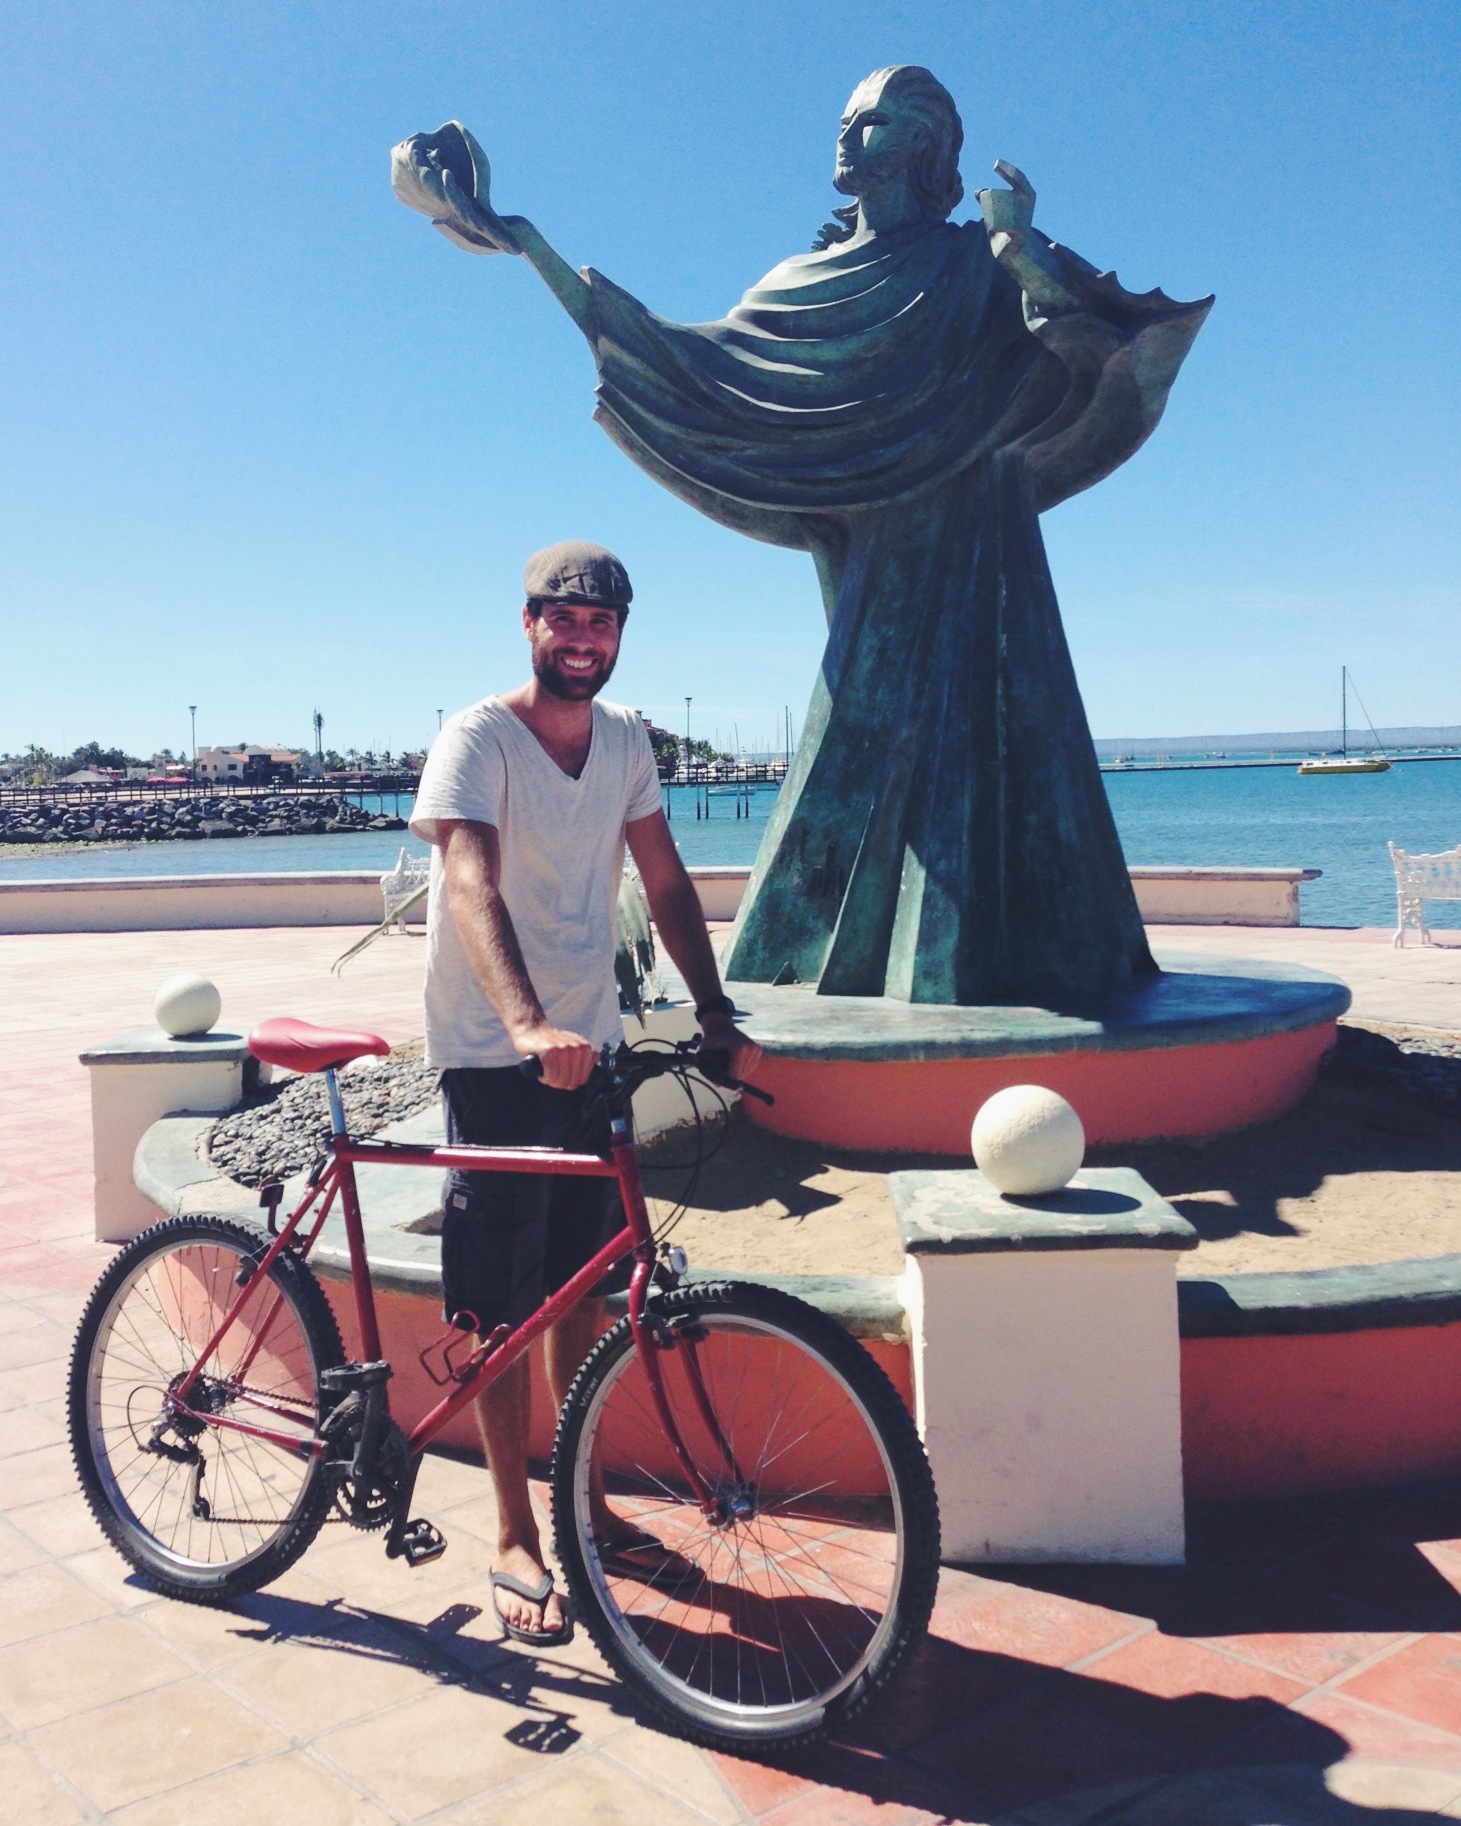 Post-tune-up along the waterfront of La Paz.